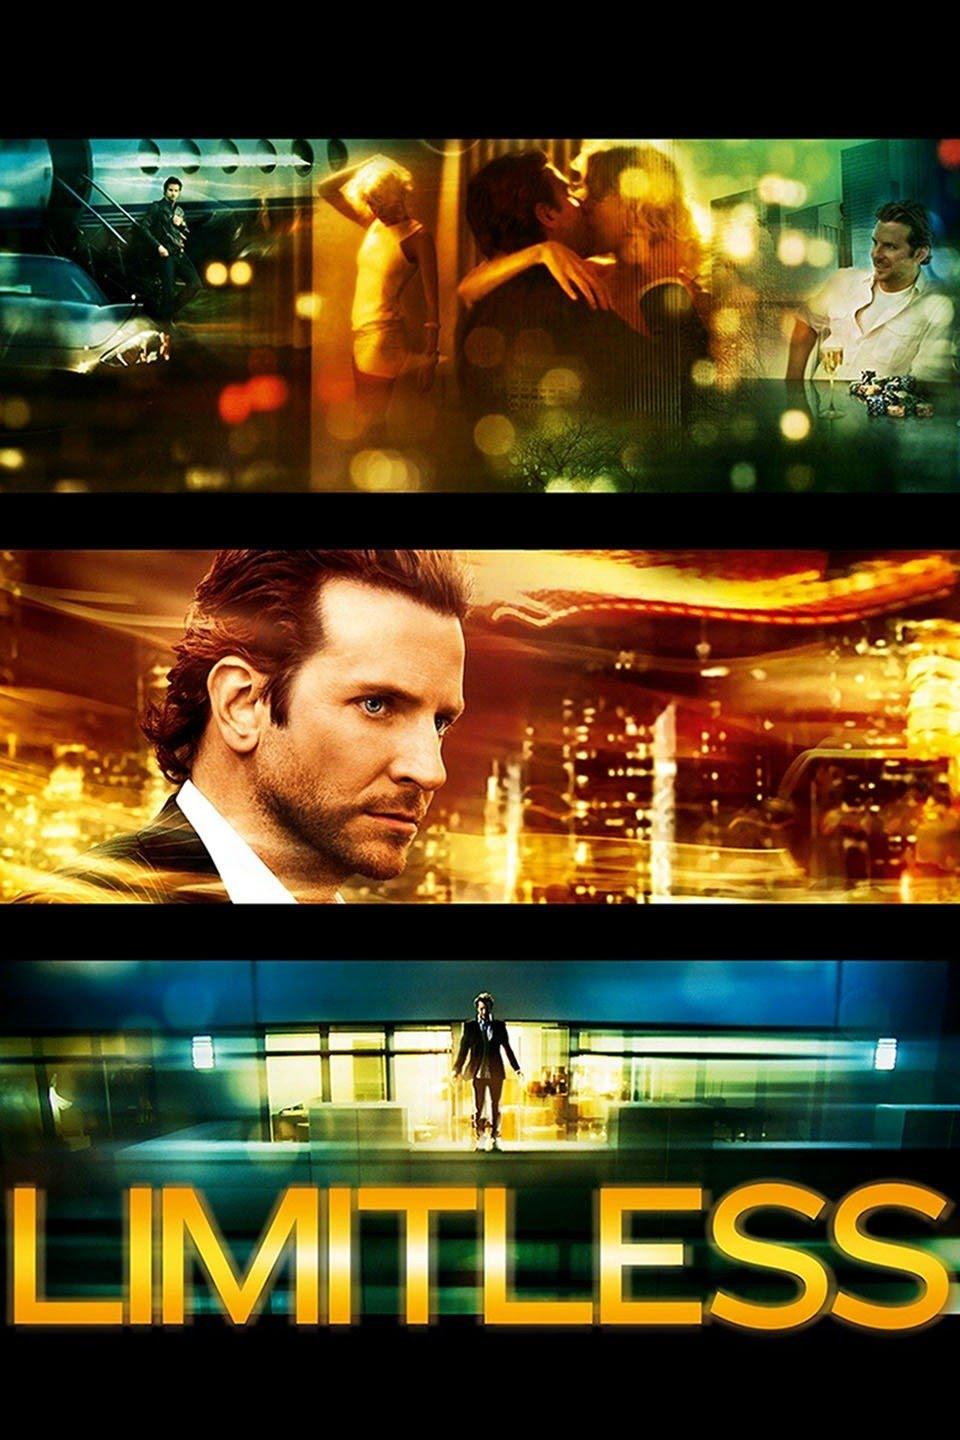 Download Limitless 2011 Full Movie In English 480p | 720p